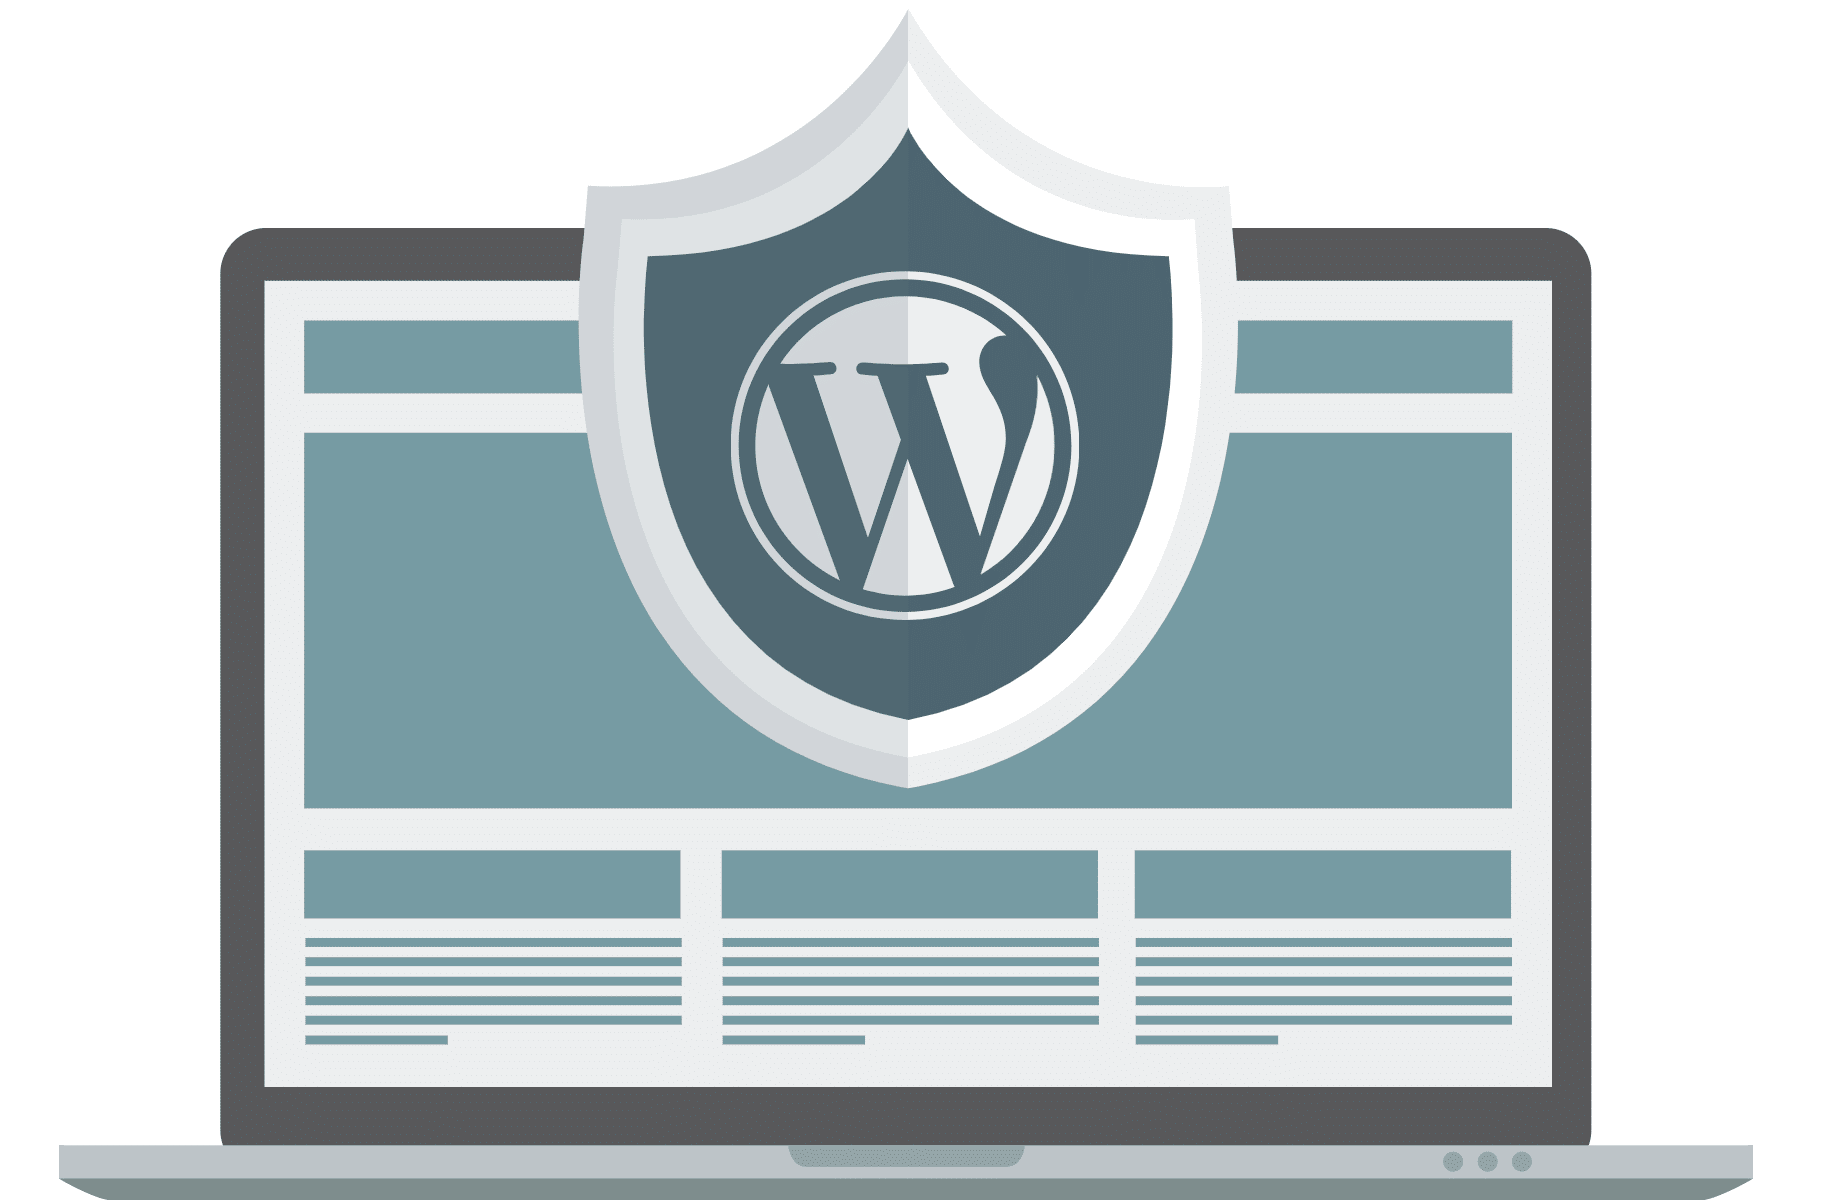 Errores de wordpress comunes